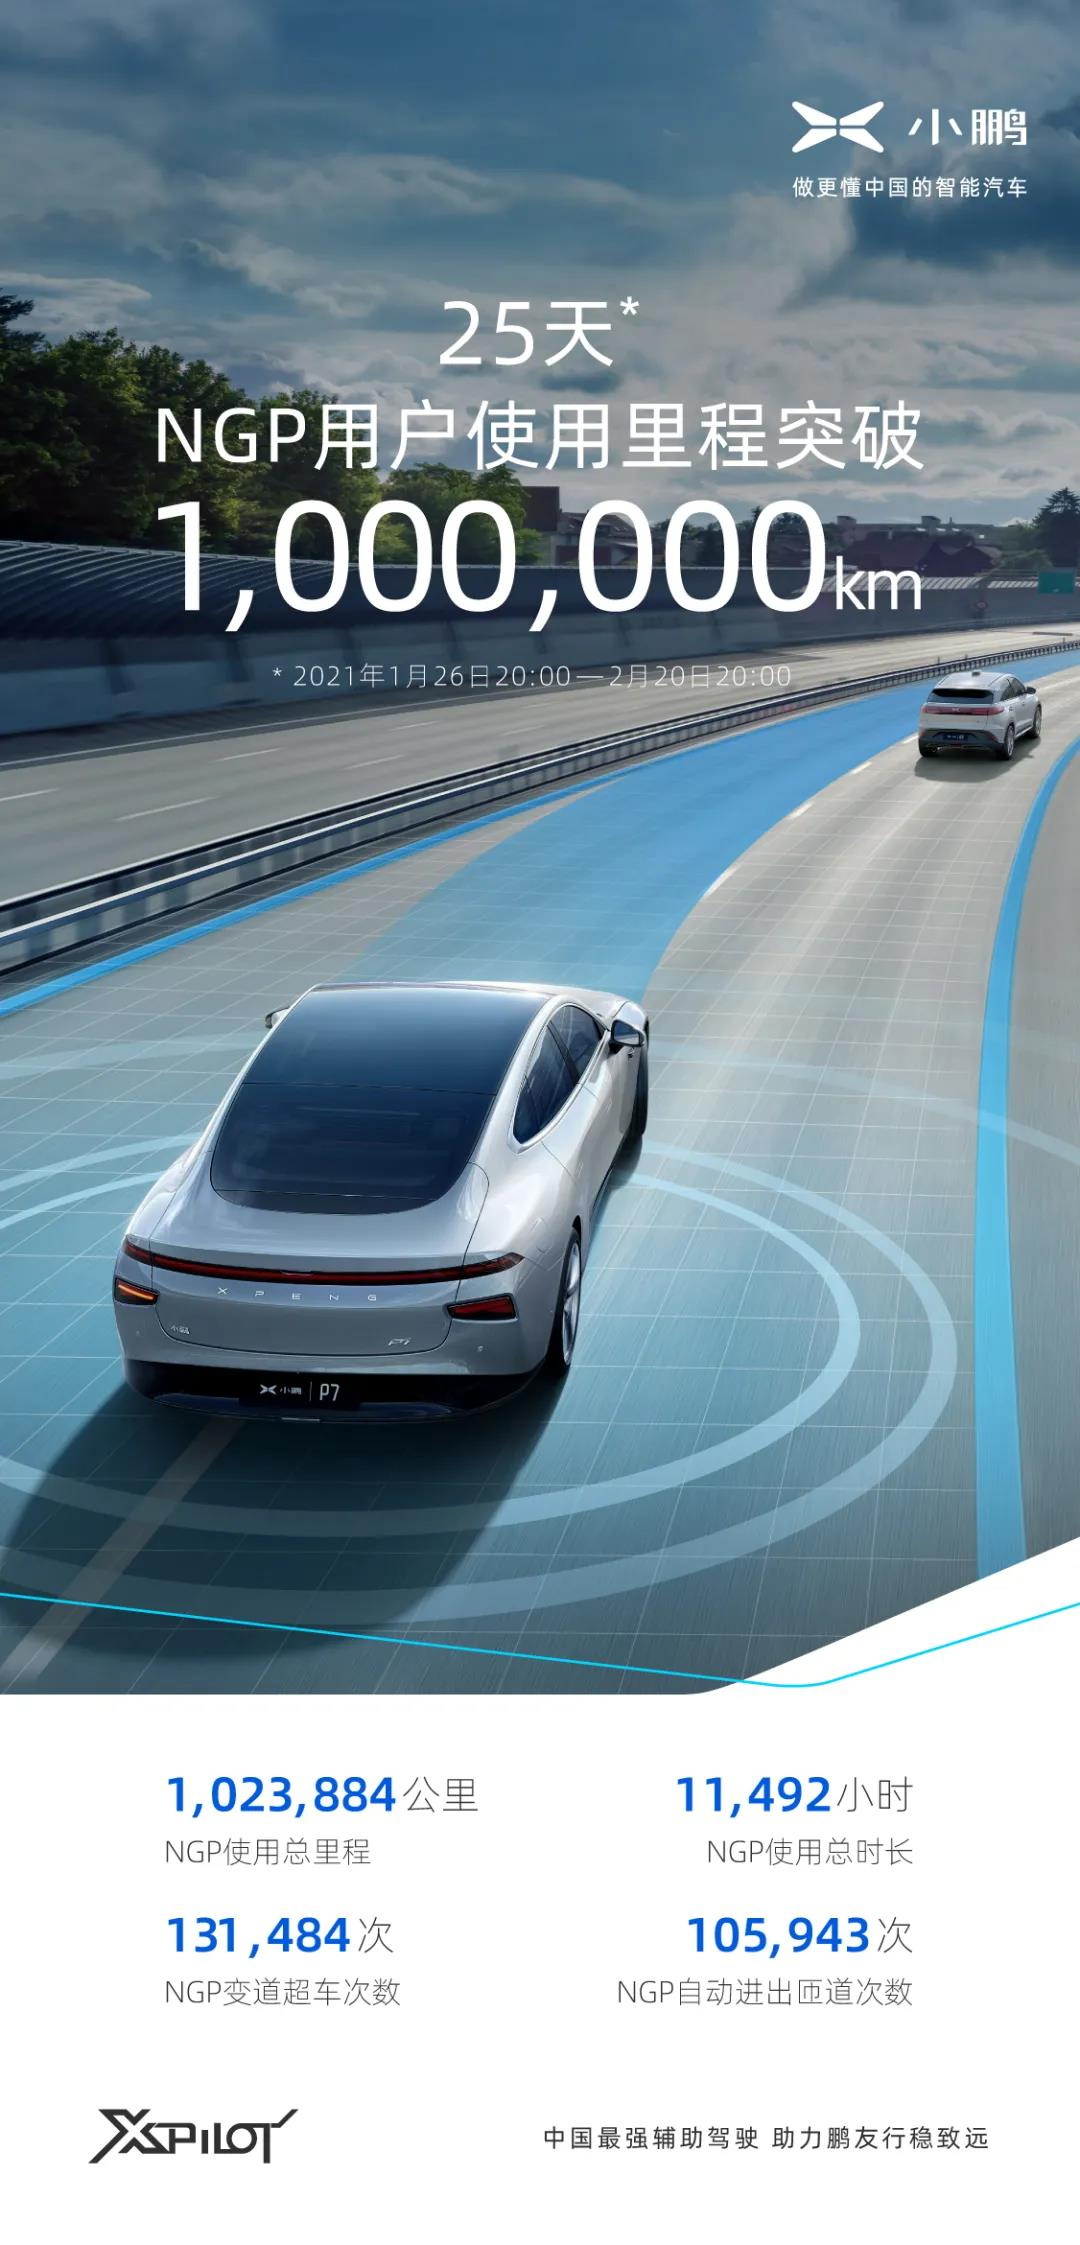 XPeng says NGP surpasses 1 million km user mileage 25 days after launch-CnEVPost